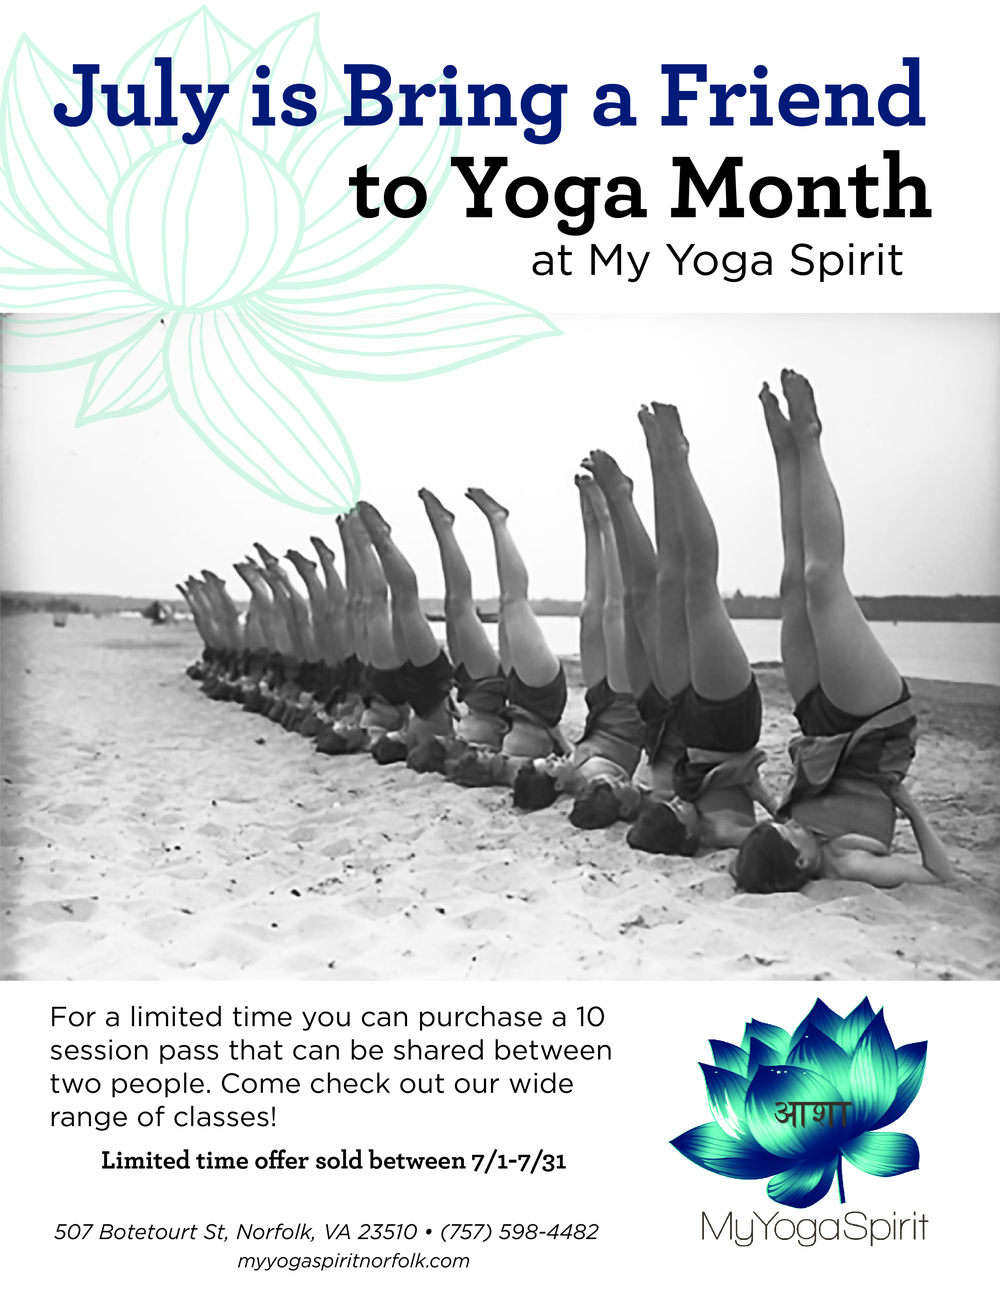 Bring a Friend to Yoga Month